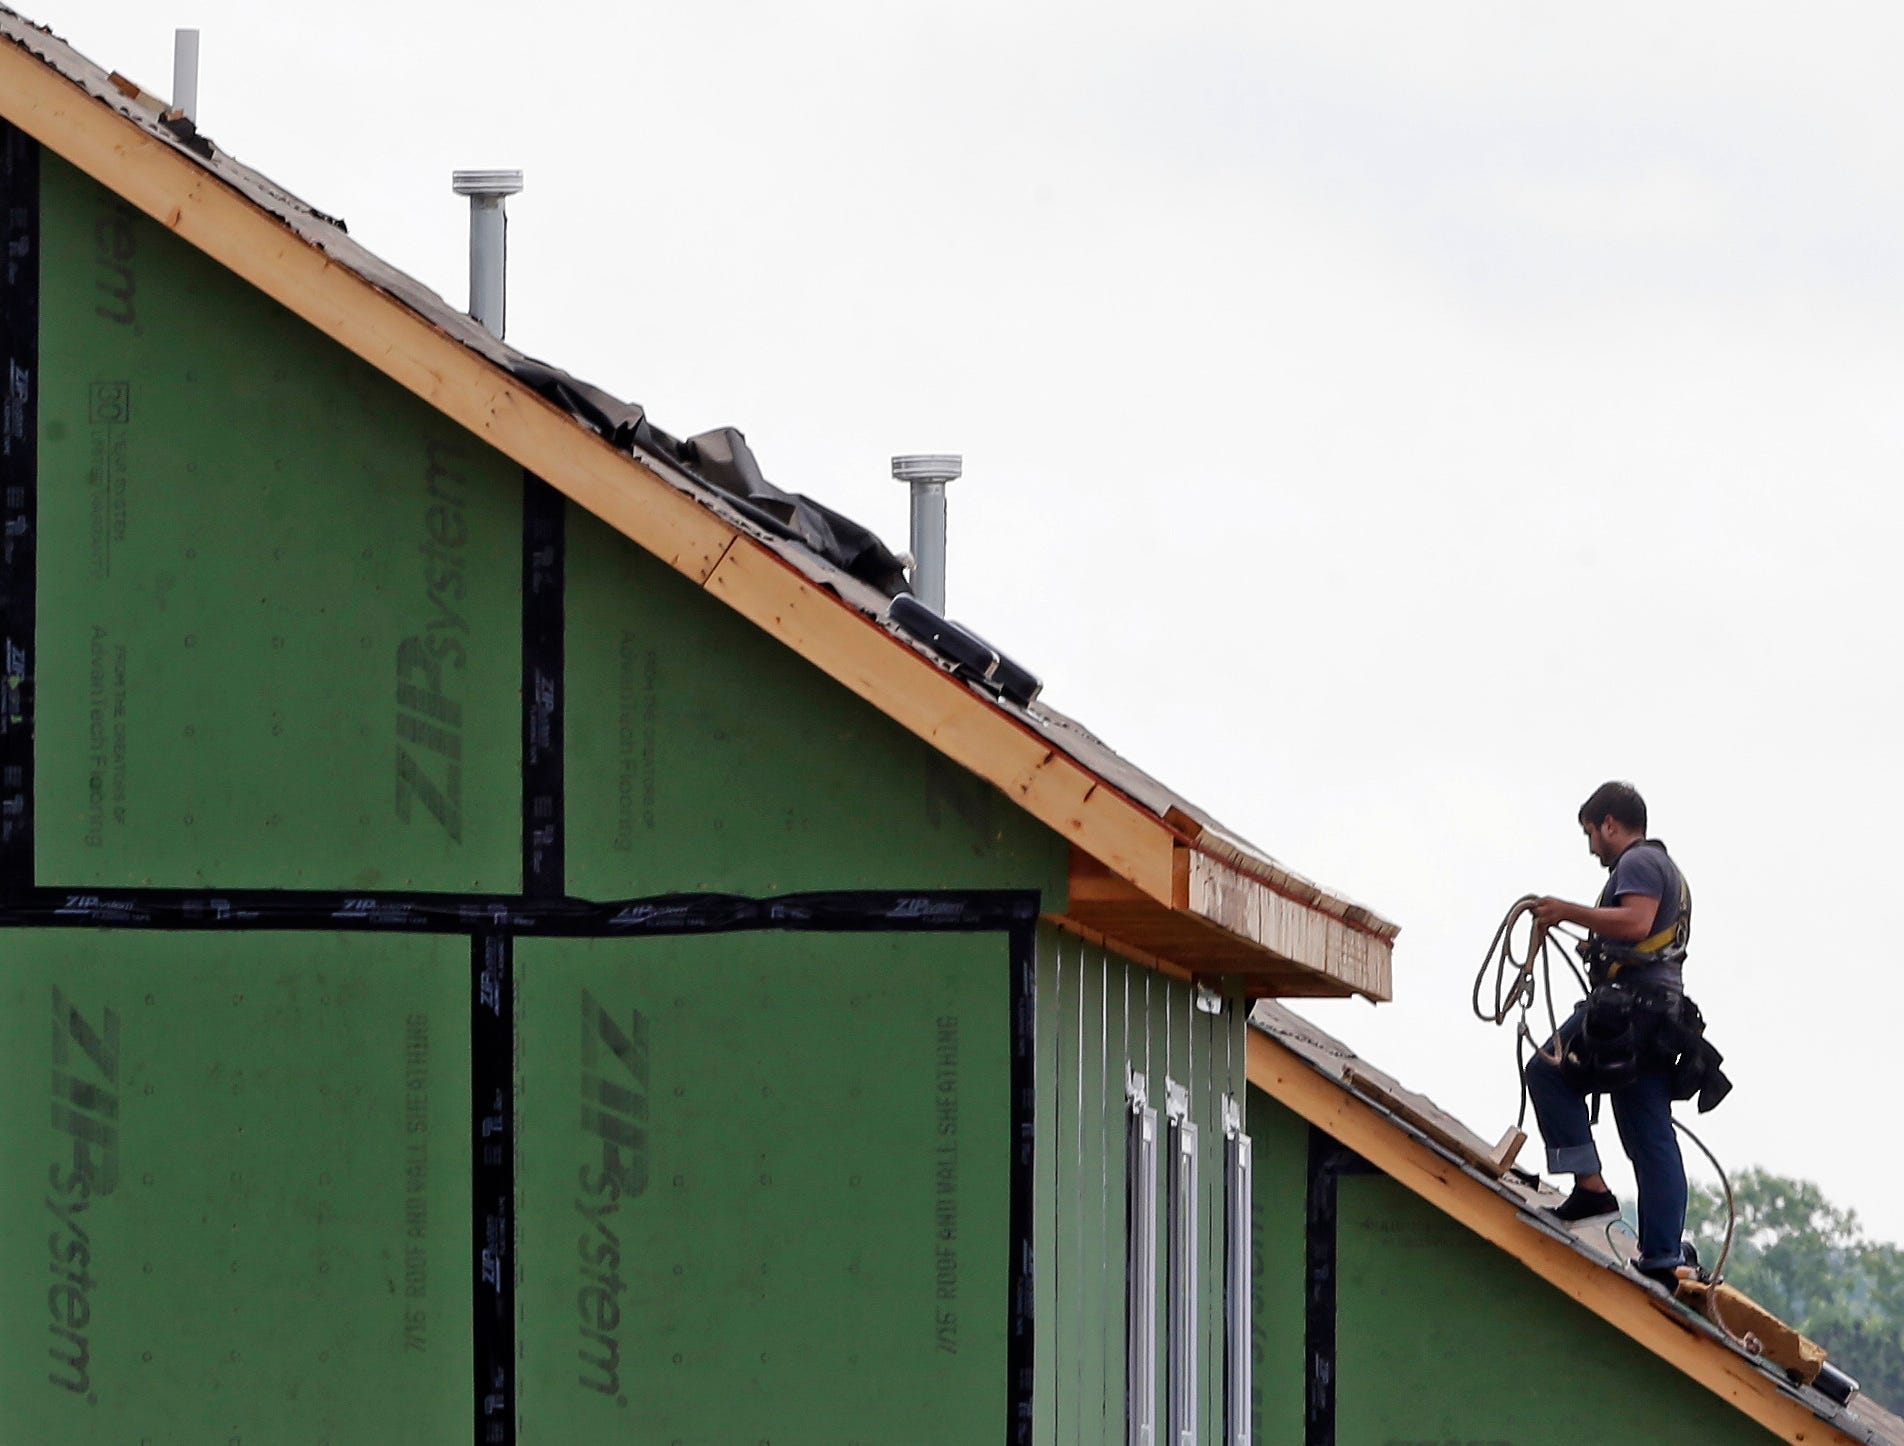 Single family housing starts surge at fastest pace since Oct. 2007